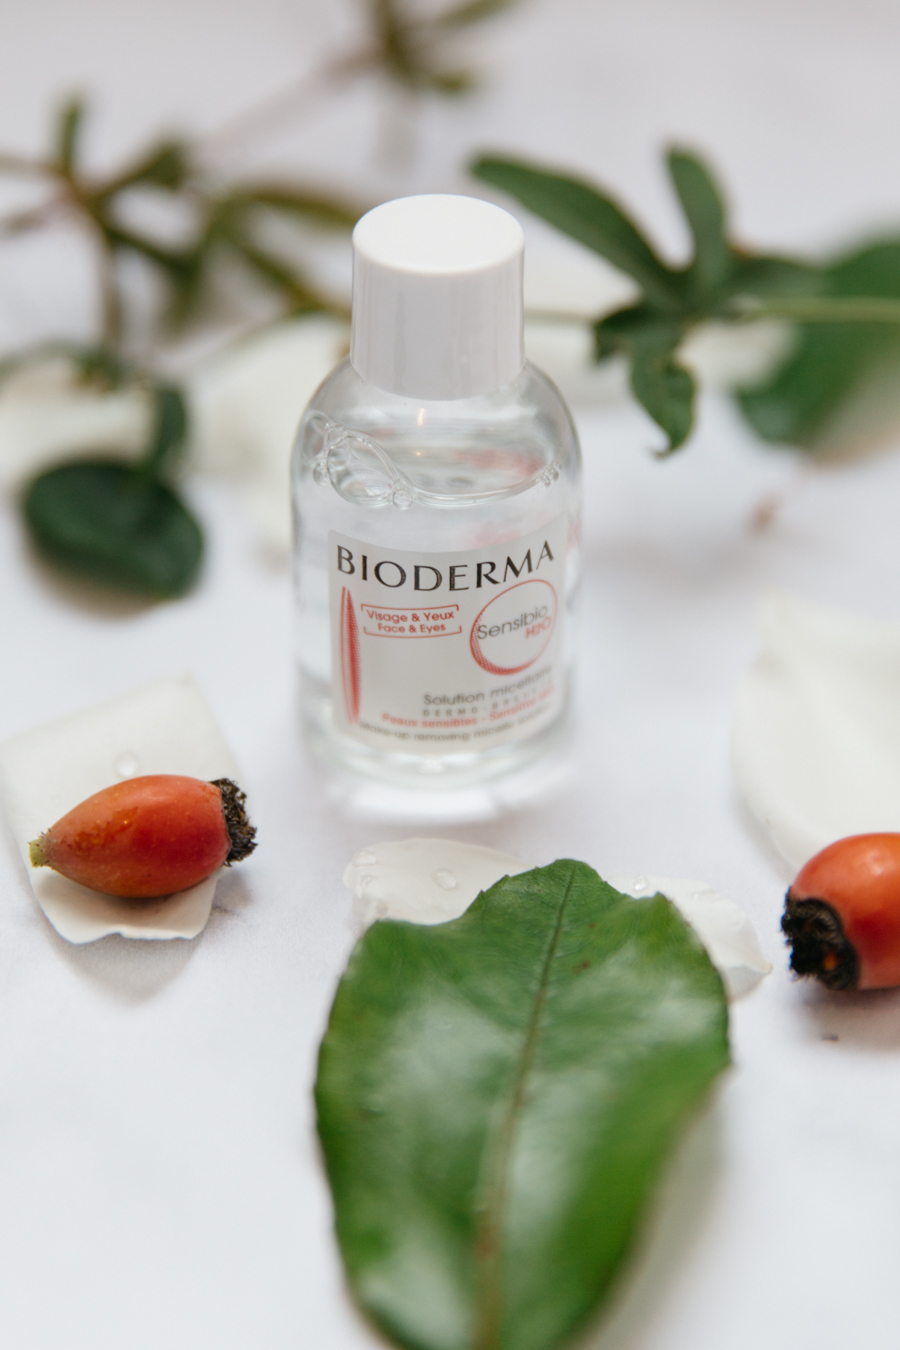 Bioderma makeup removing micelle solution.